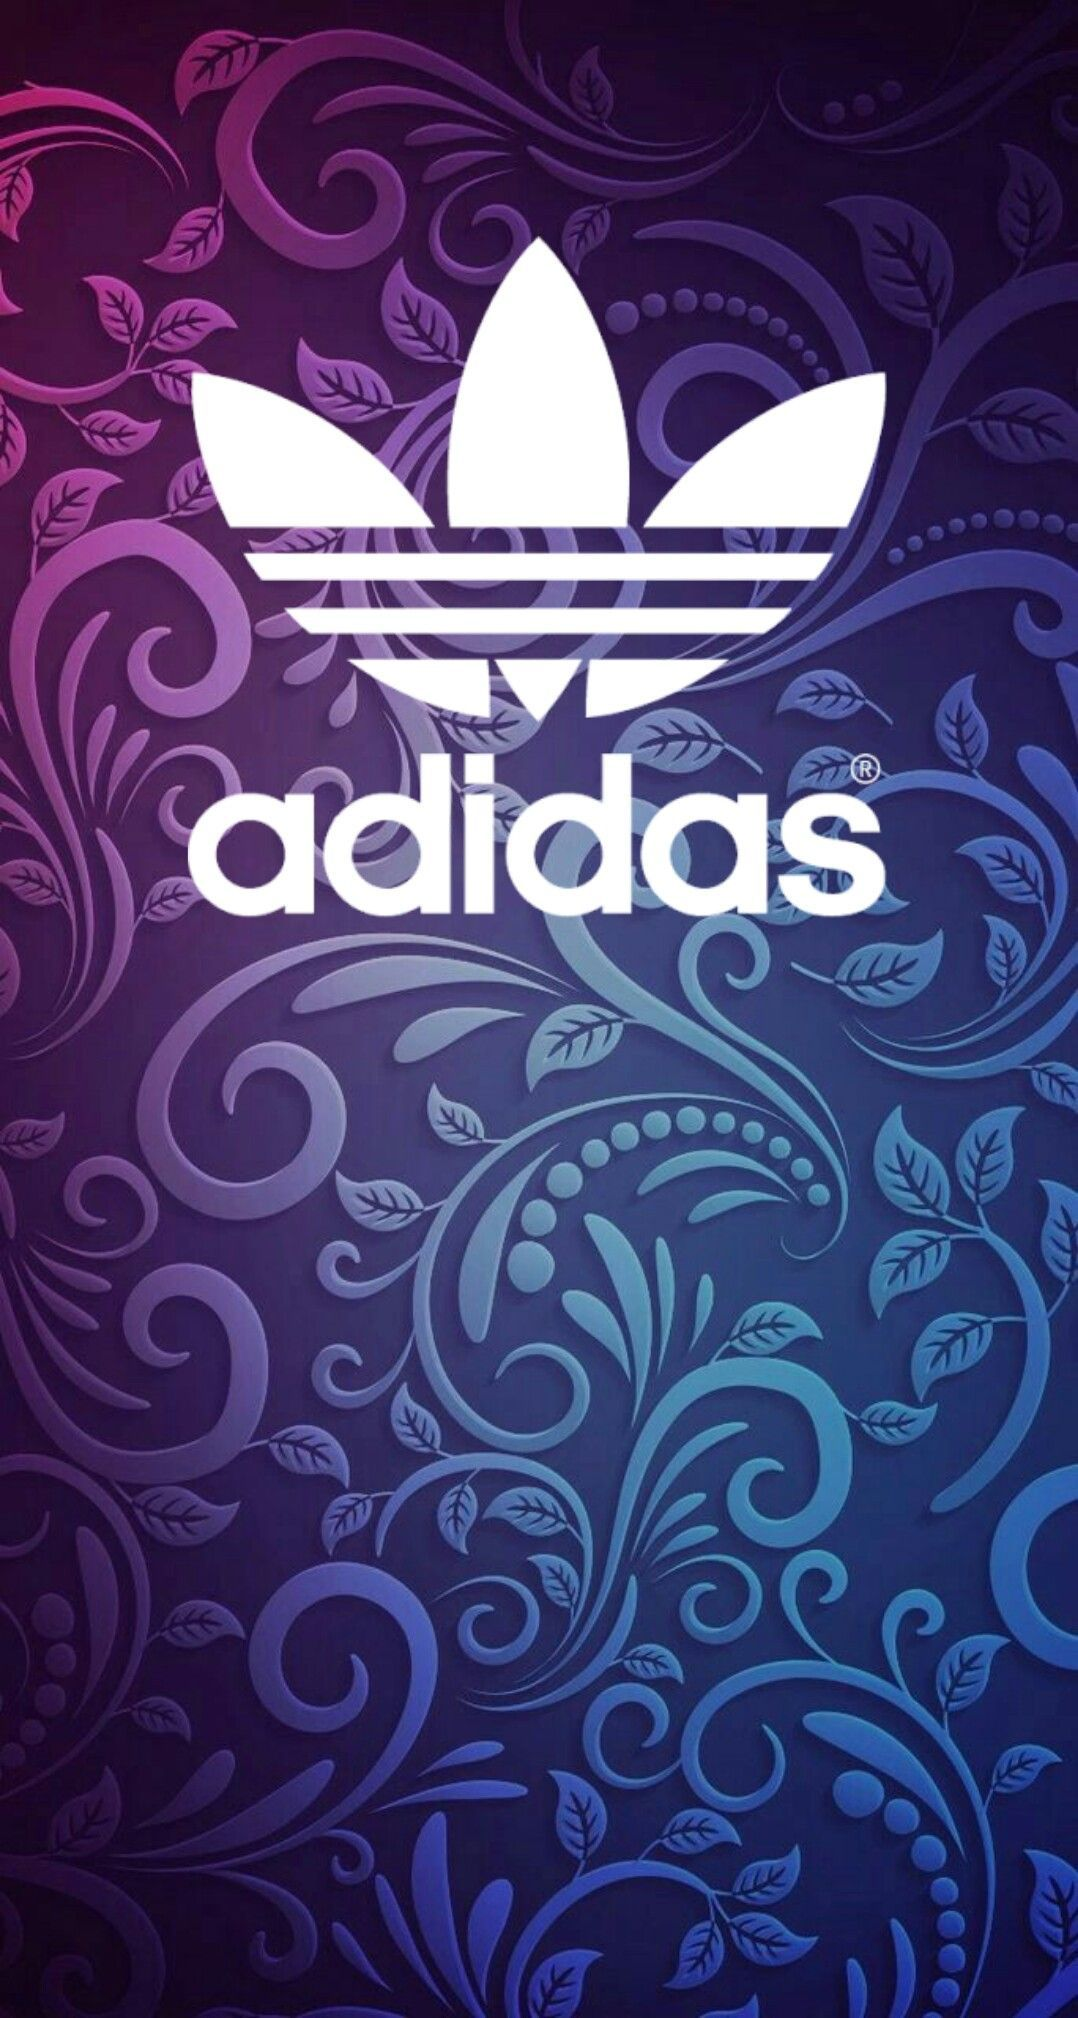 Adidas Black Wallpaper Android Iphone In 2020 Adidas Iphone Wallpaper Adidas Wallpaper Iphone Adidas Wallpapers